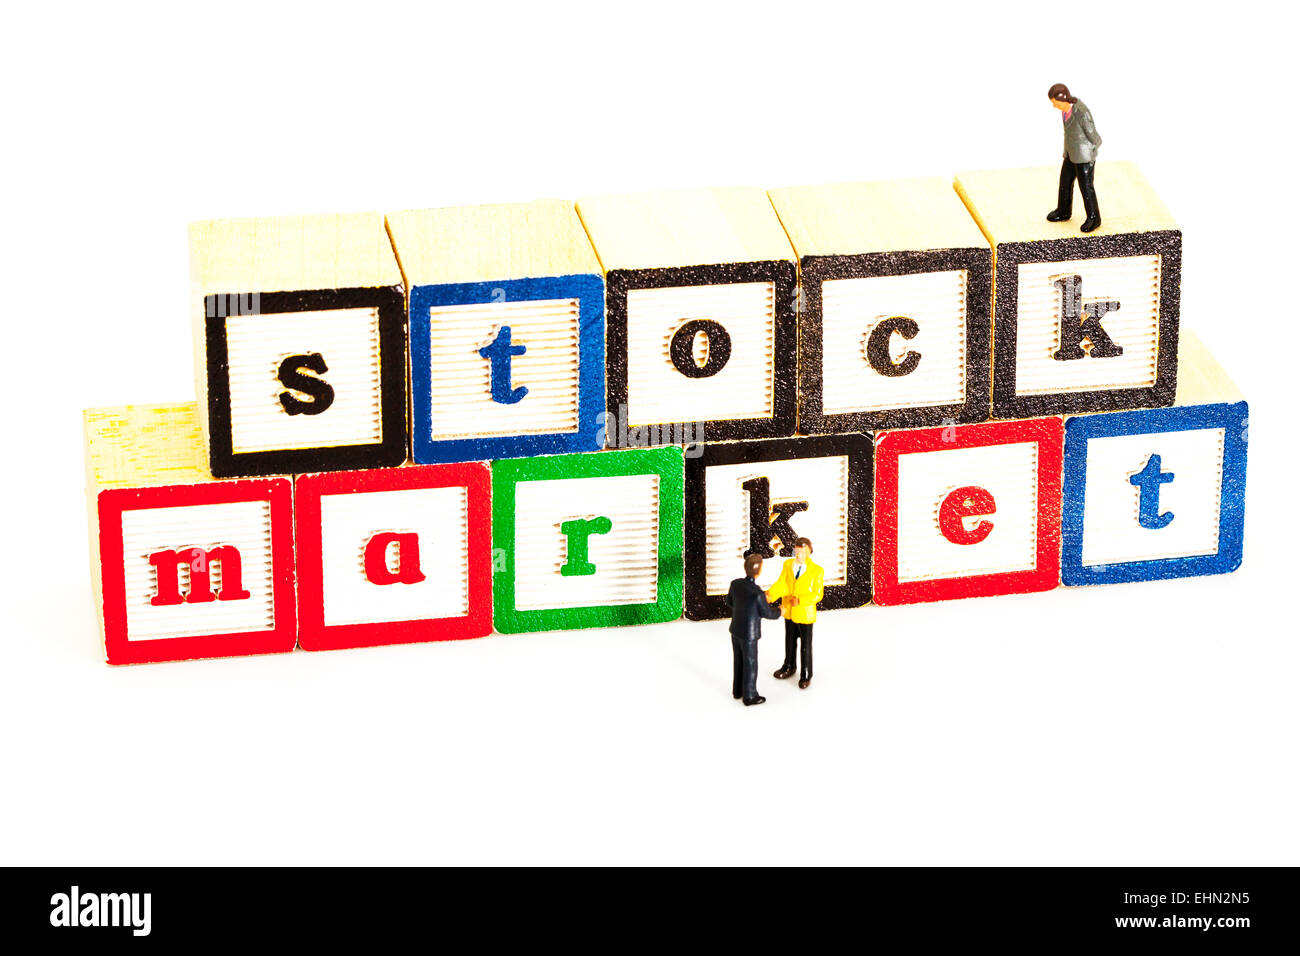 Stock market shares deal business winners losers up down finance finances deals isolated cut out cutout white background - Stock Image